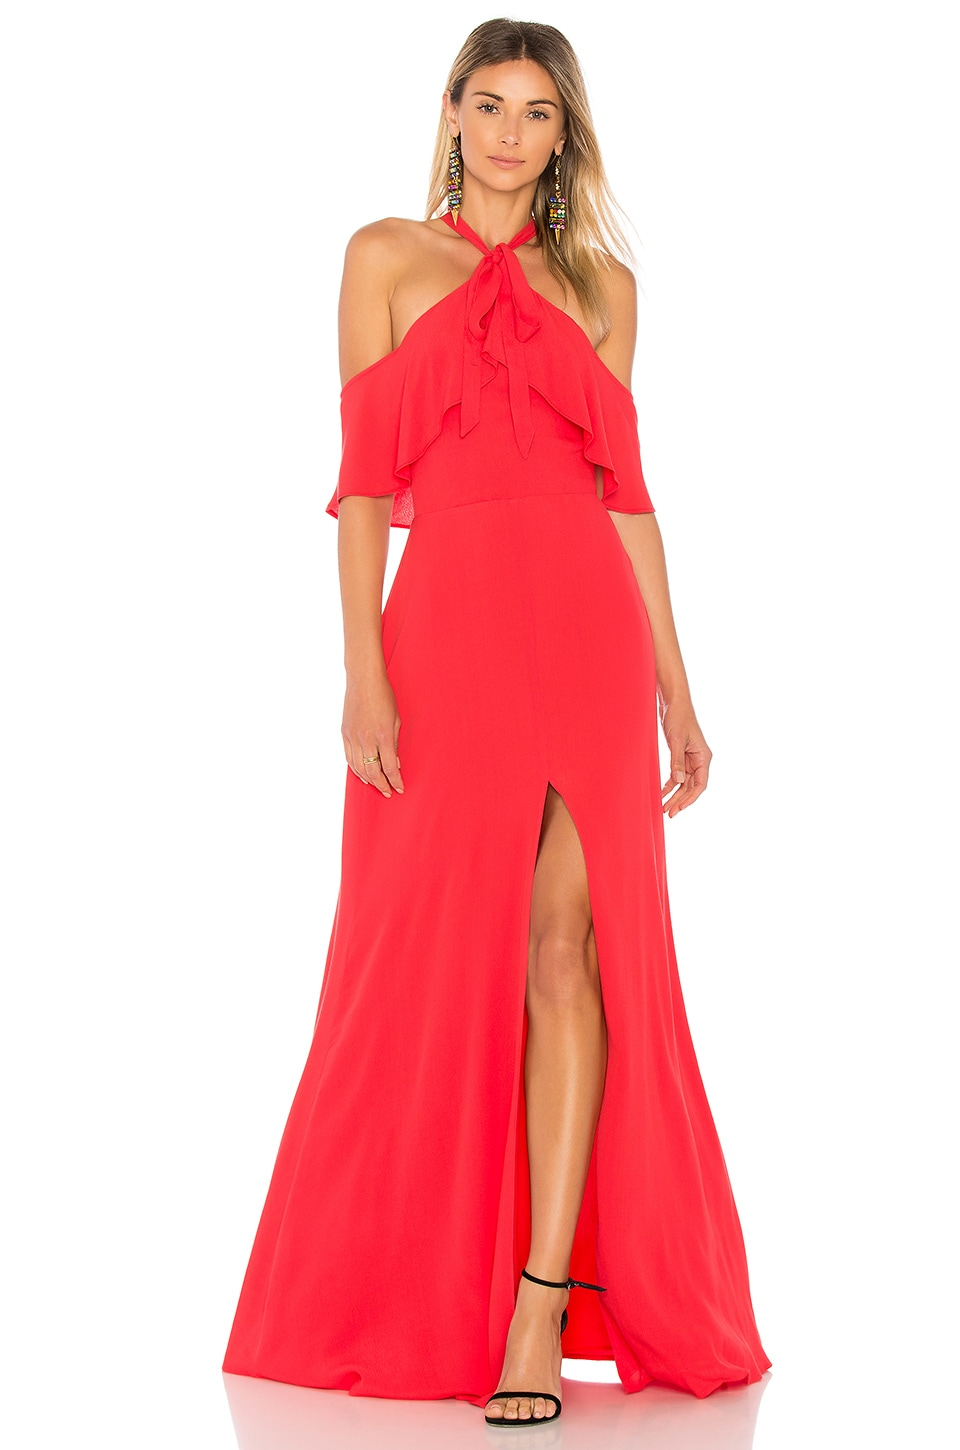 Privacy Please Bennette Maxi Dress in Red